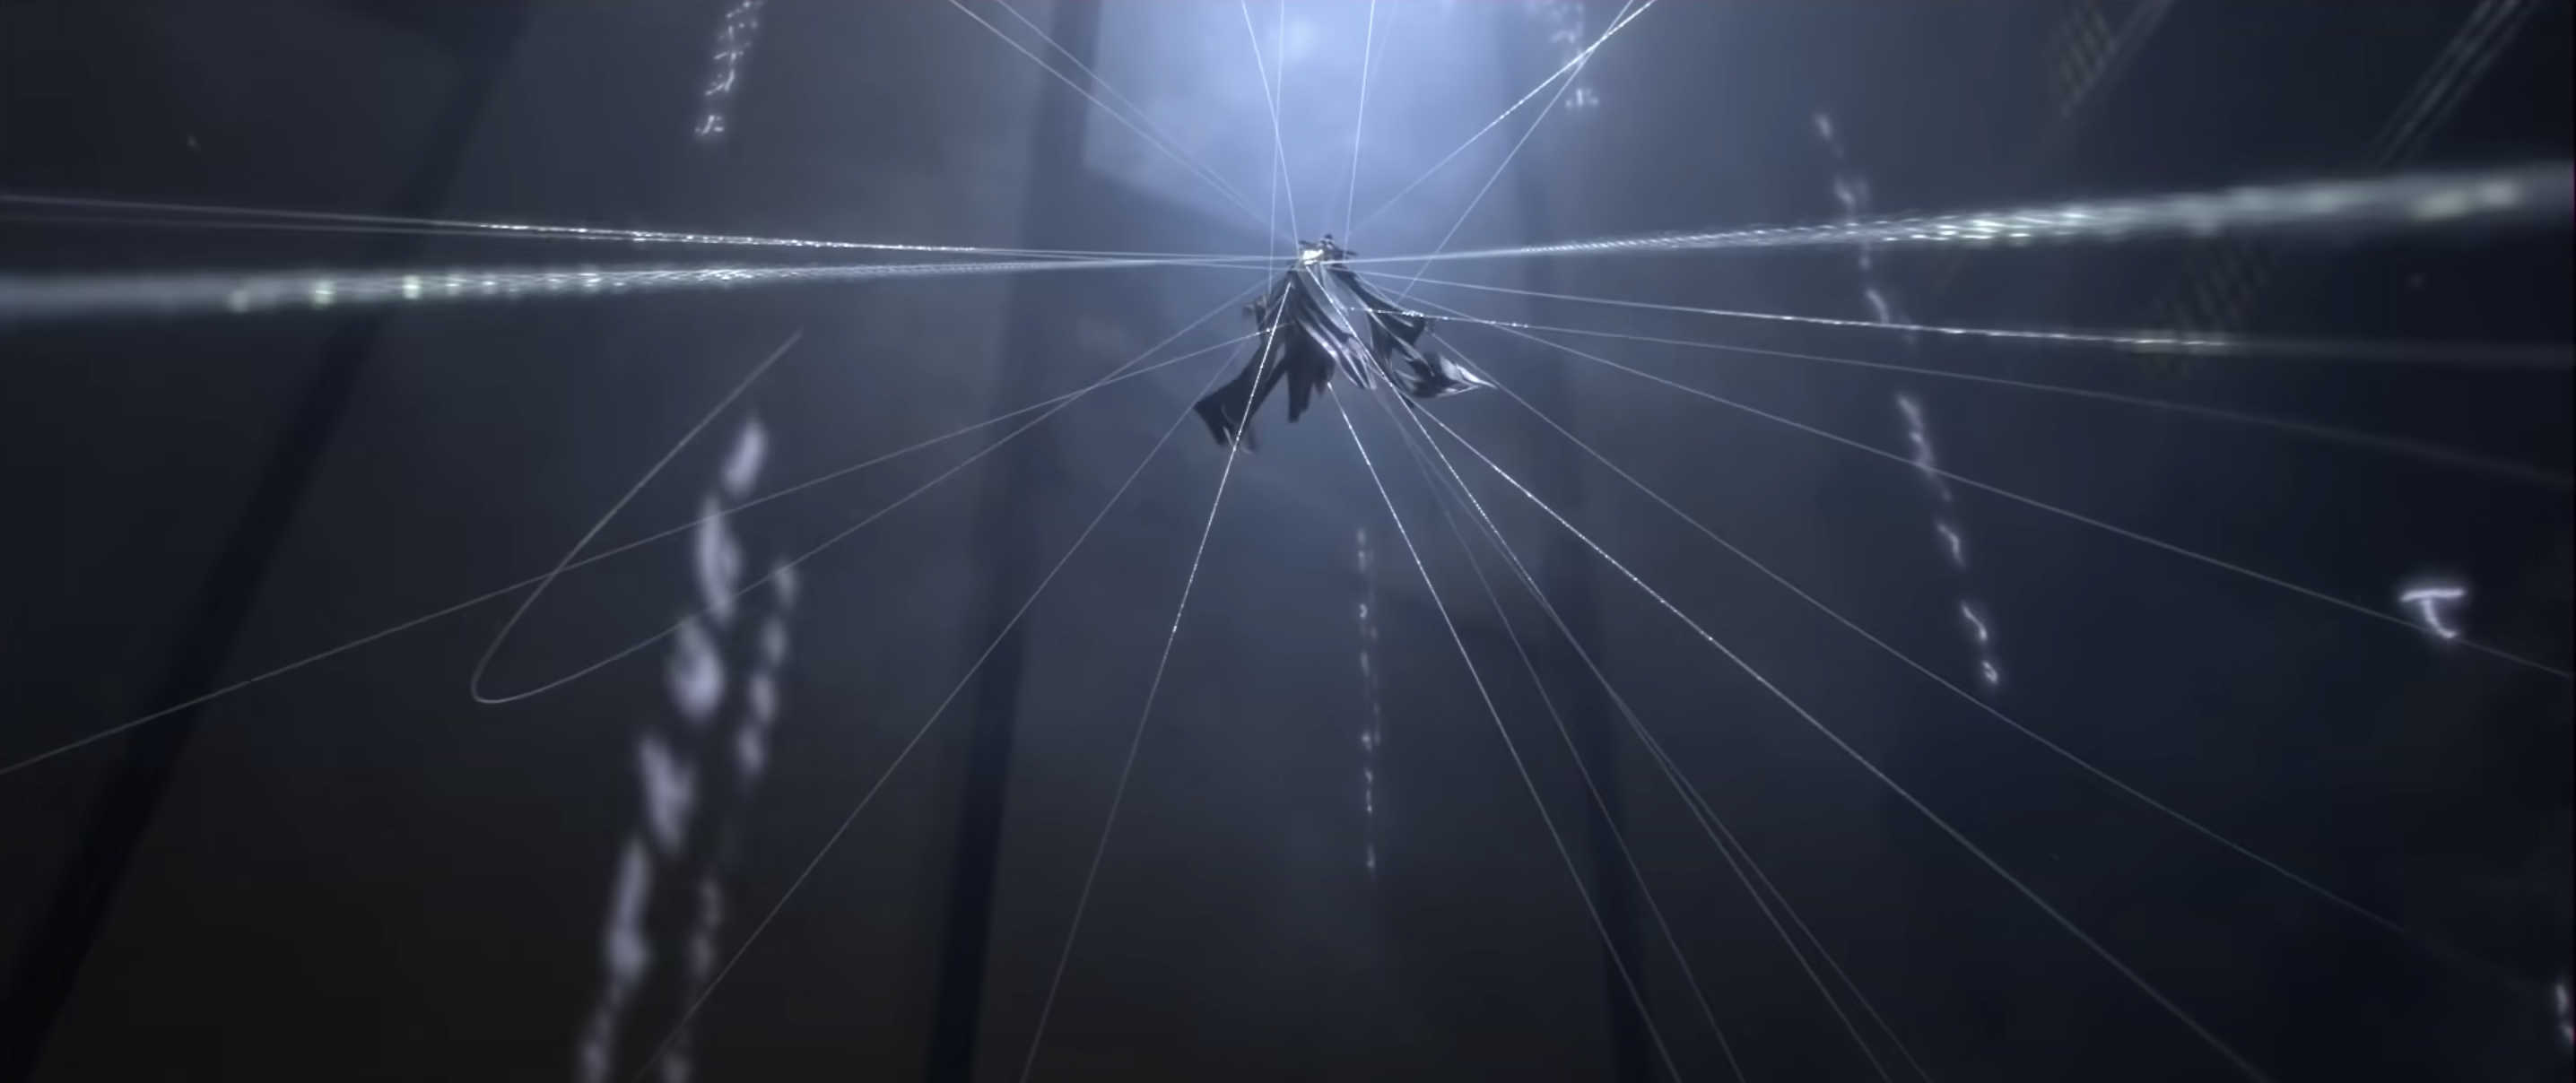 A screencap of an antagonist from the trailer. They've unleashed a web-like attack inside the opera house, and are suspended in the air with the webs surrounding them.